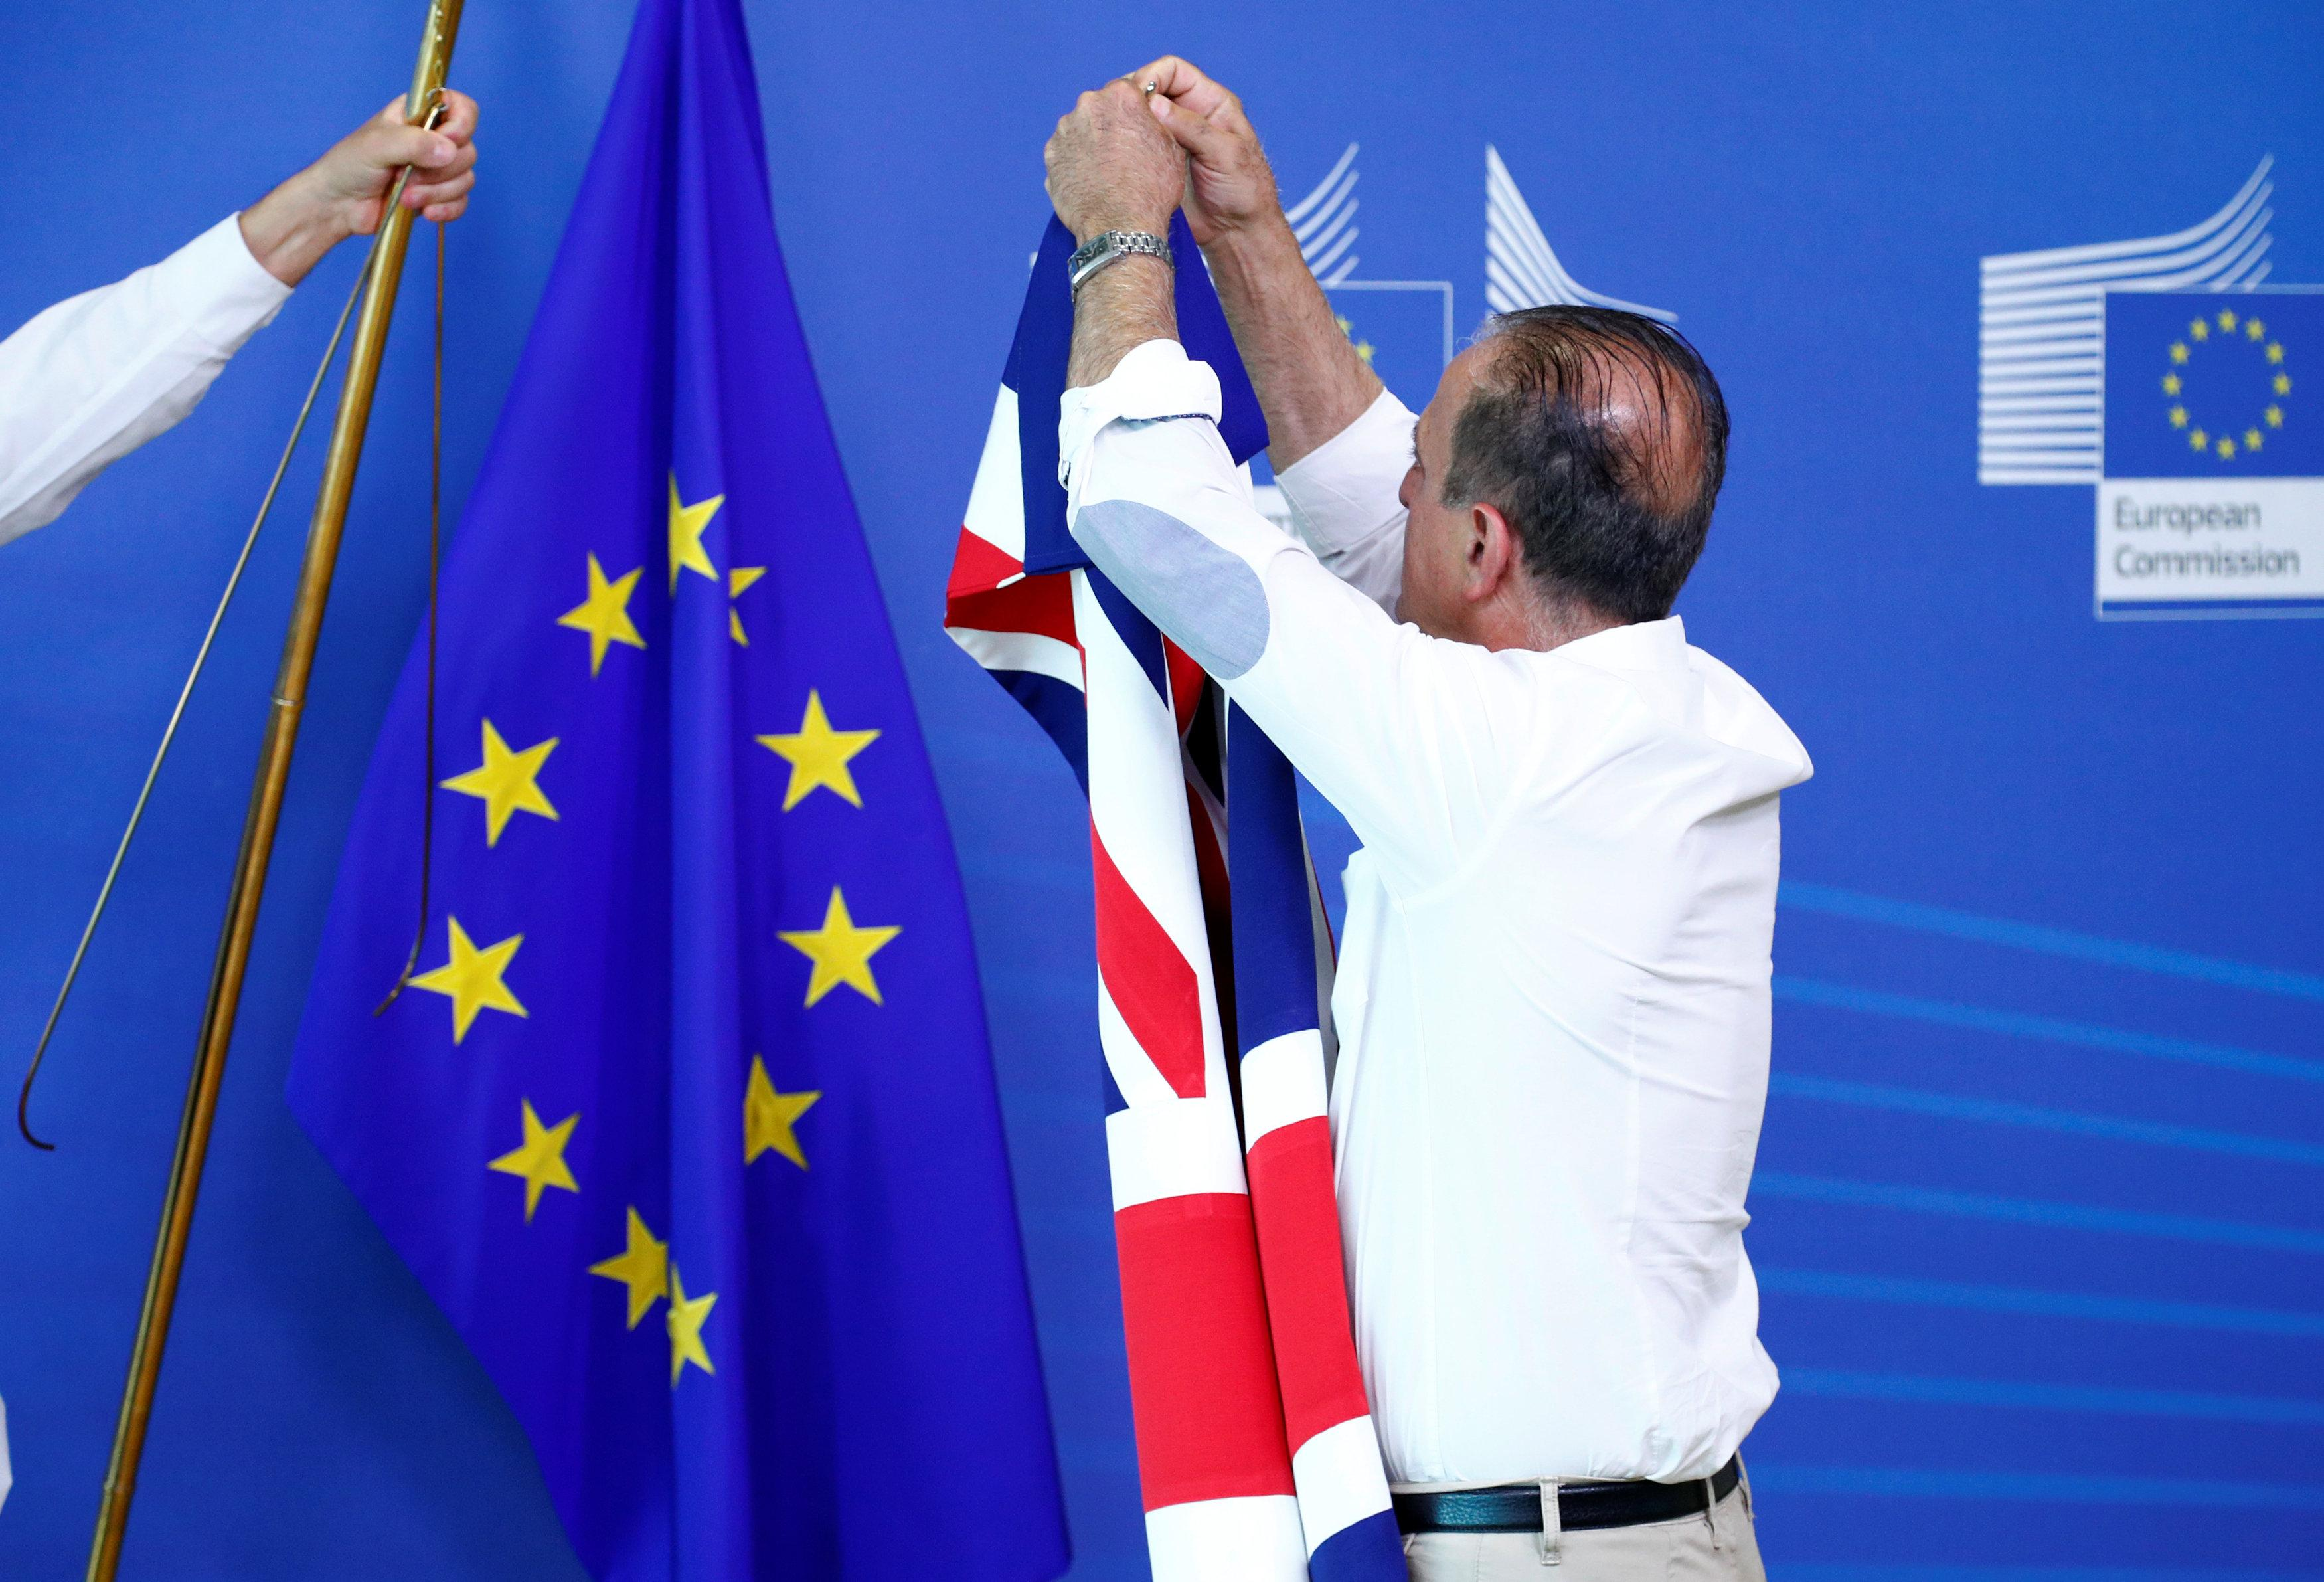 Timeline - Brexit at breaking point? Diary dates for Britain's EU departure